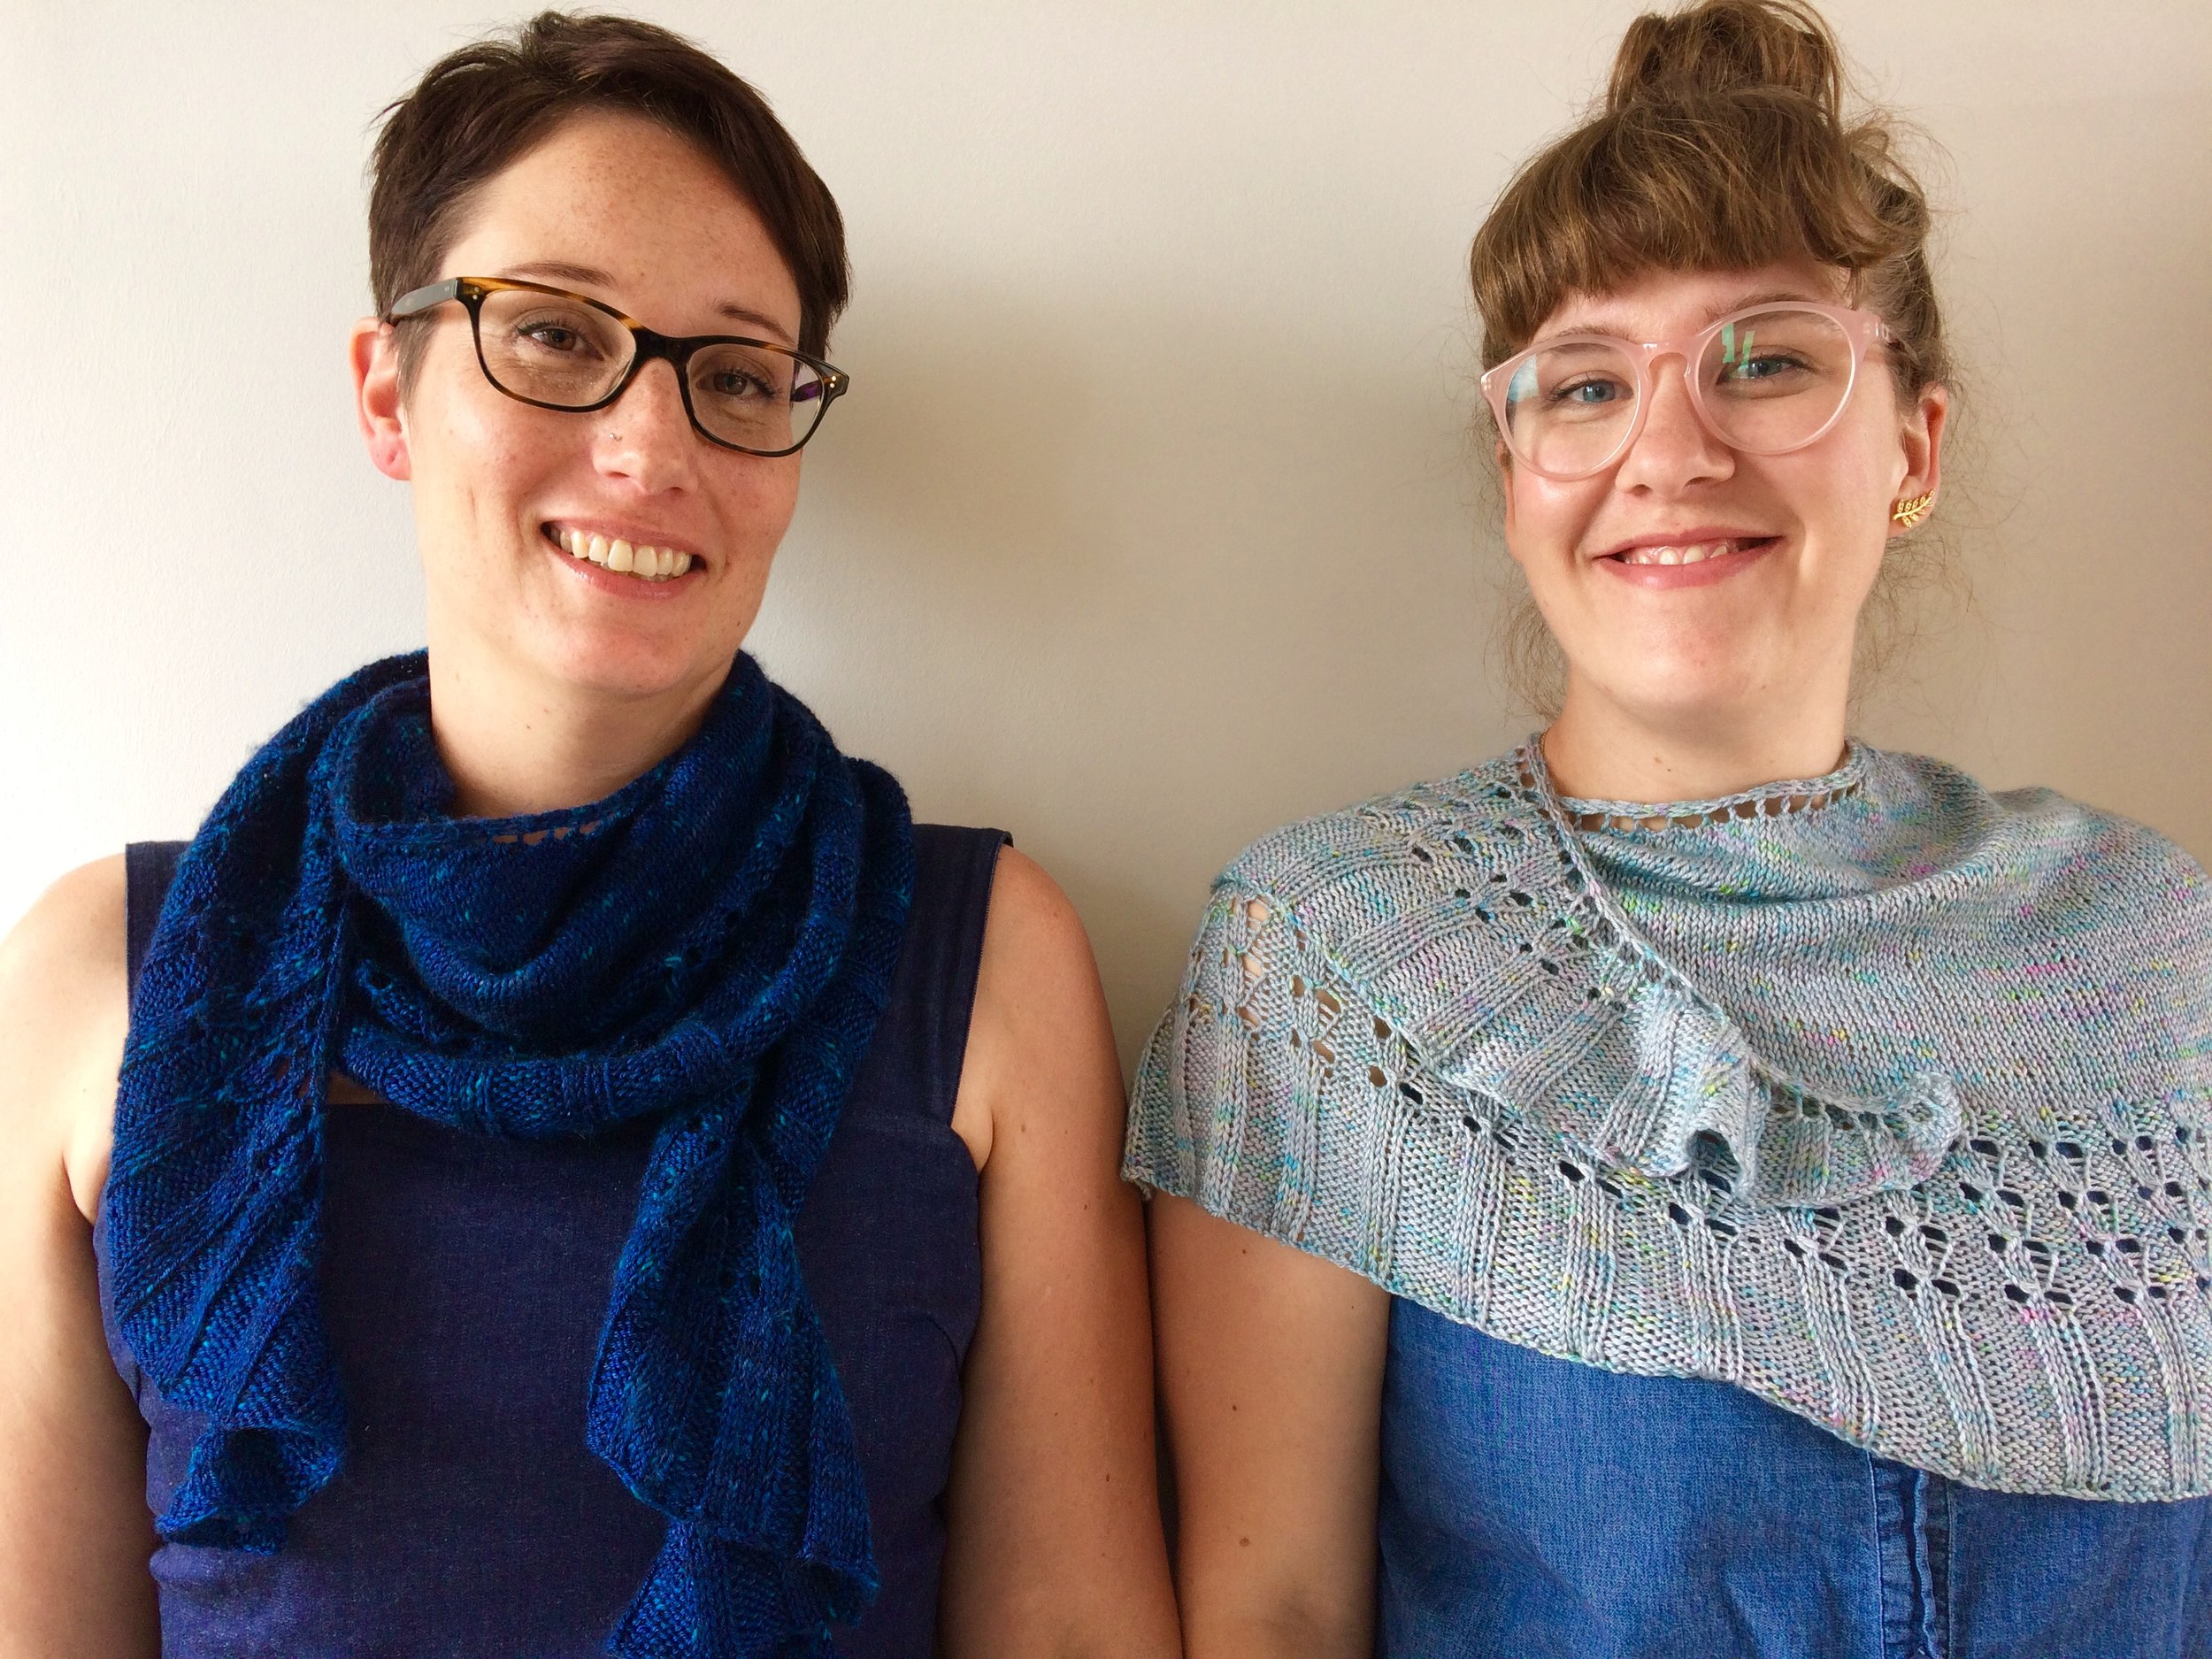 We're excited that Larissa from Travelknitter and Helen from The Wool Kitchen have teamed up with Helen from Curious Handmade with a terrific pattern and yarns for this year's GLYC 5th anniversary KAL!